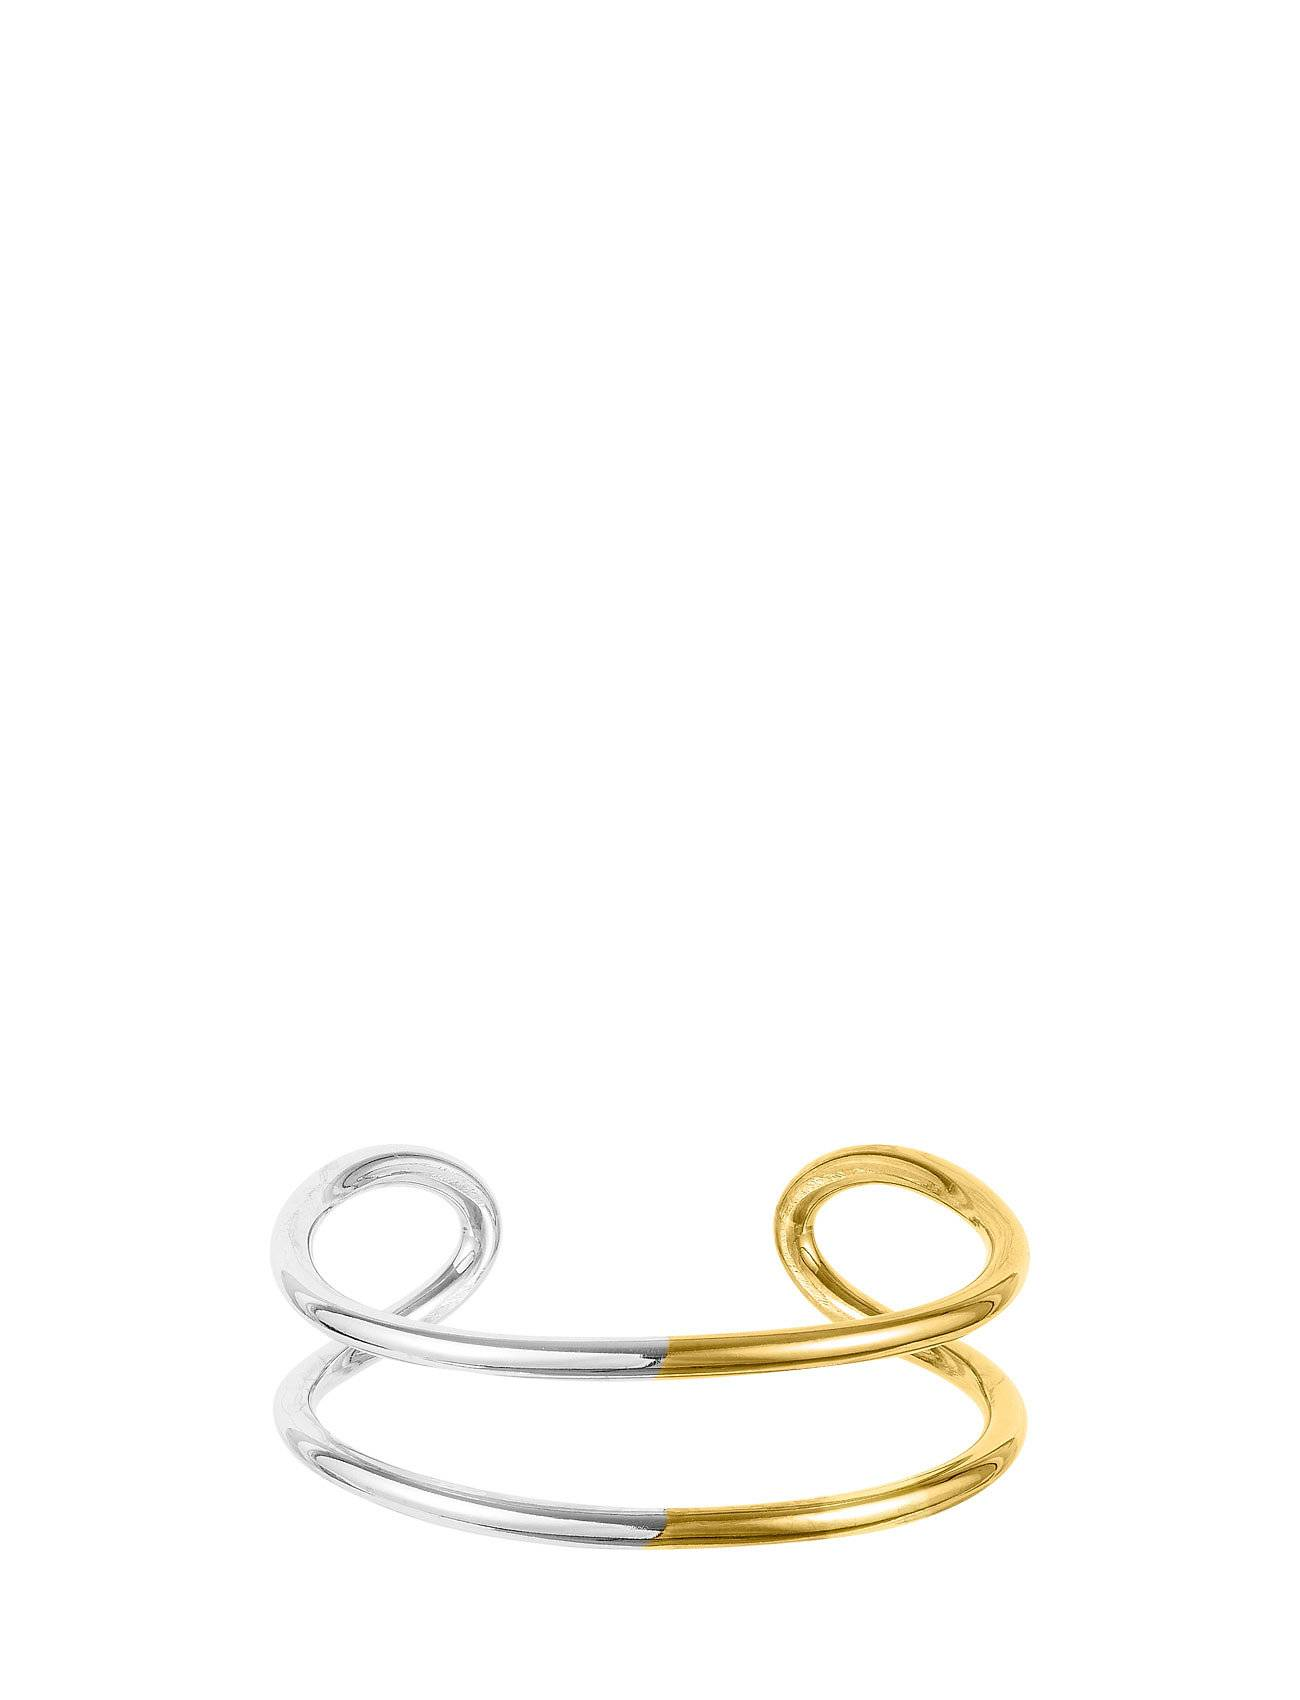 SOPHIE by SOPHIE Two Tone Cuff